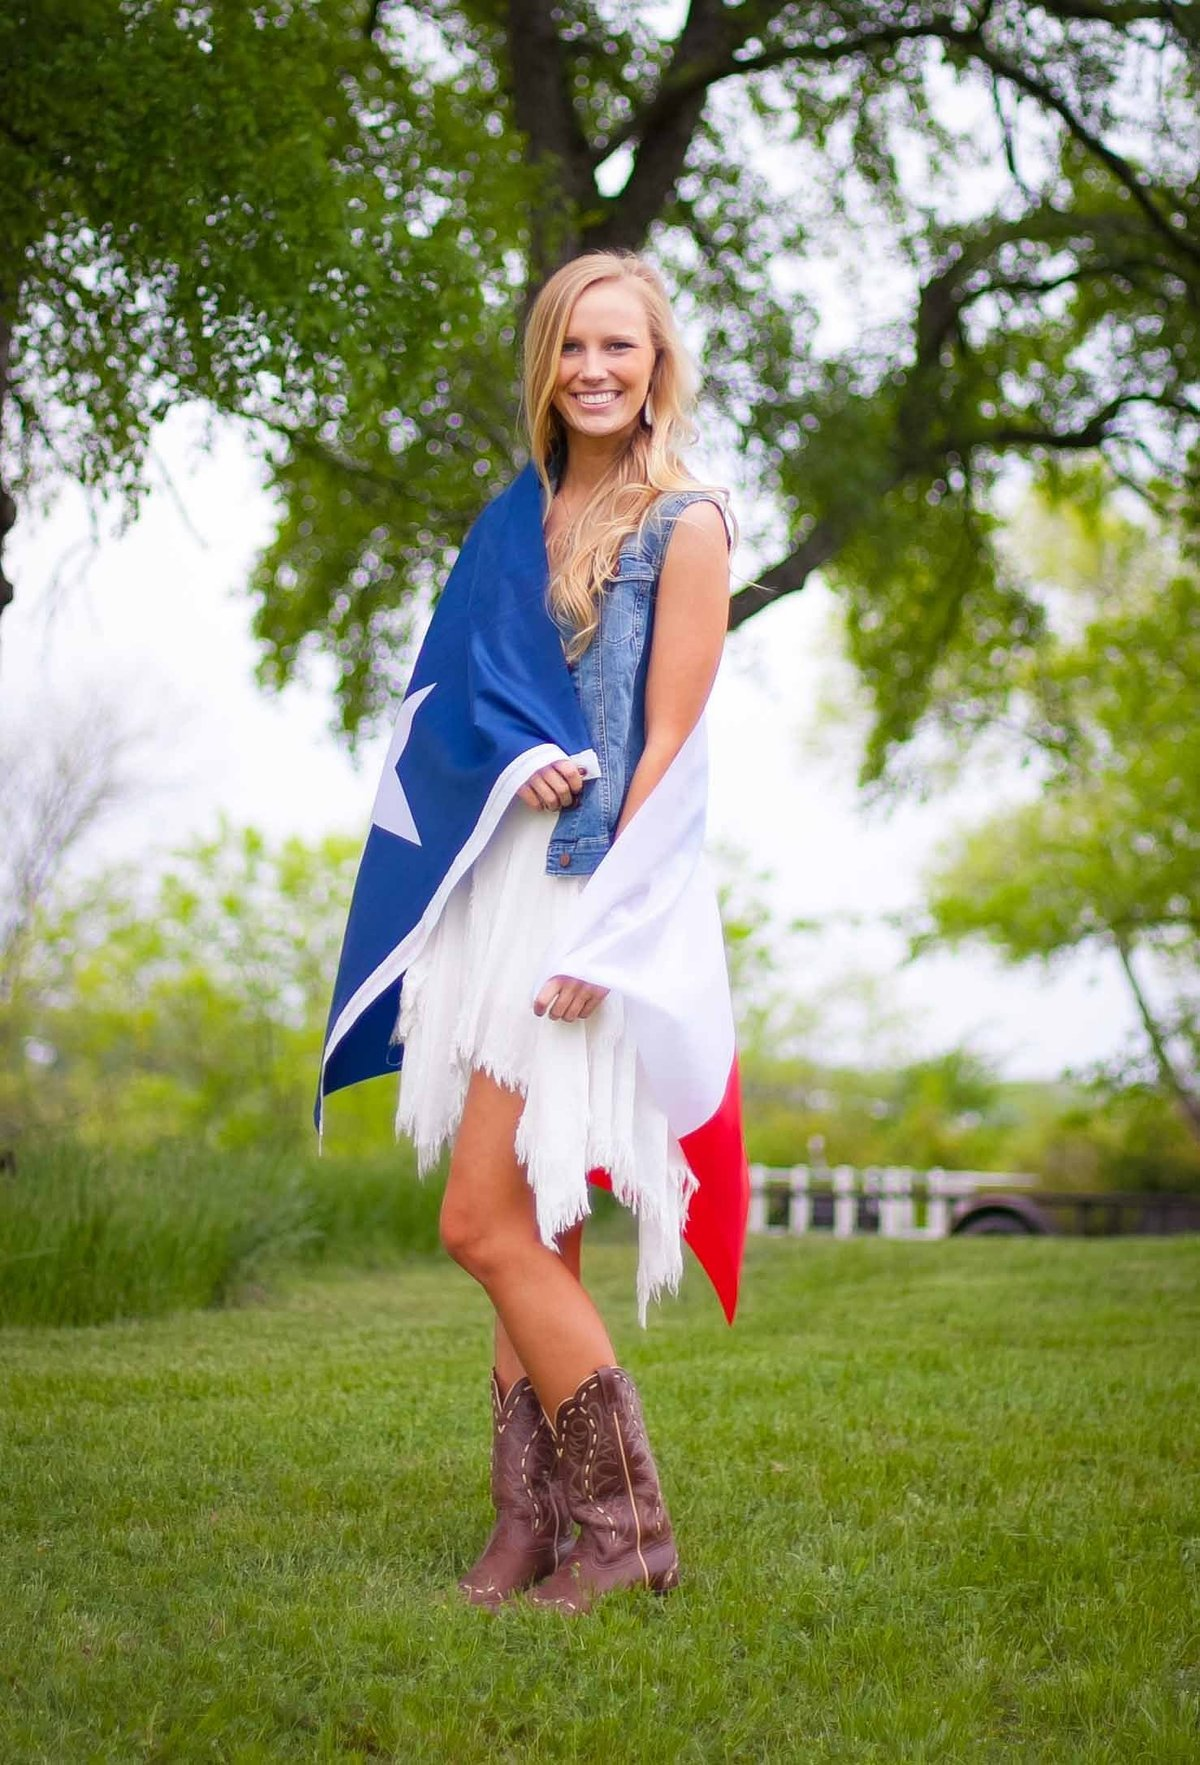 Girl wrapped in Texas Flag wearing Cowboy boots